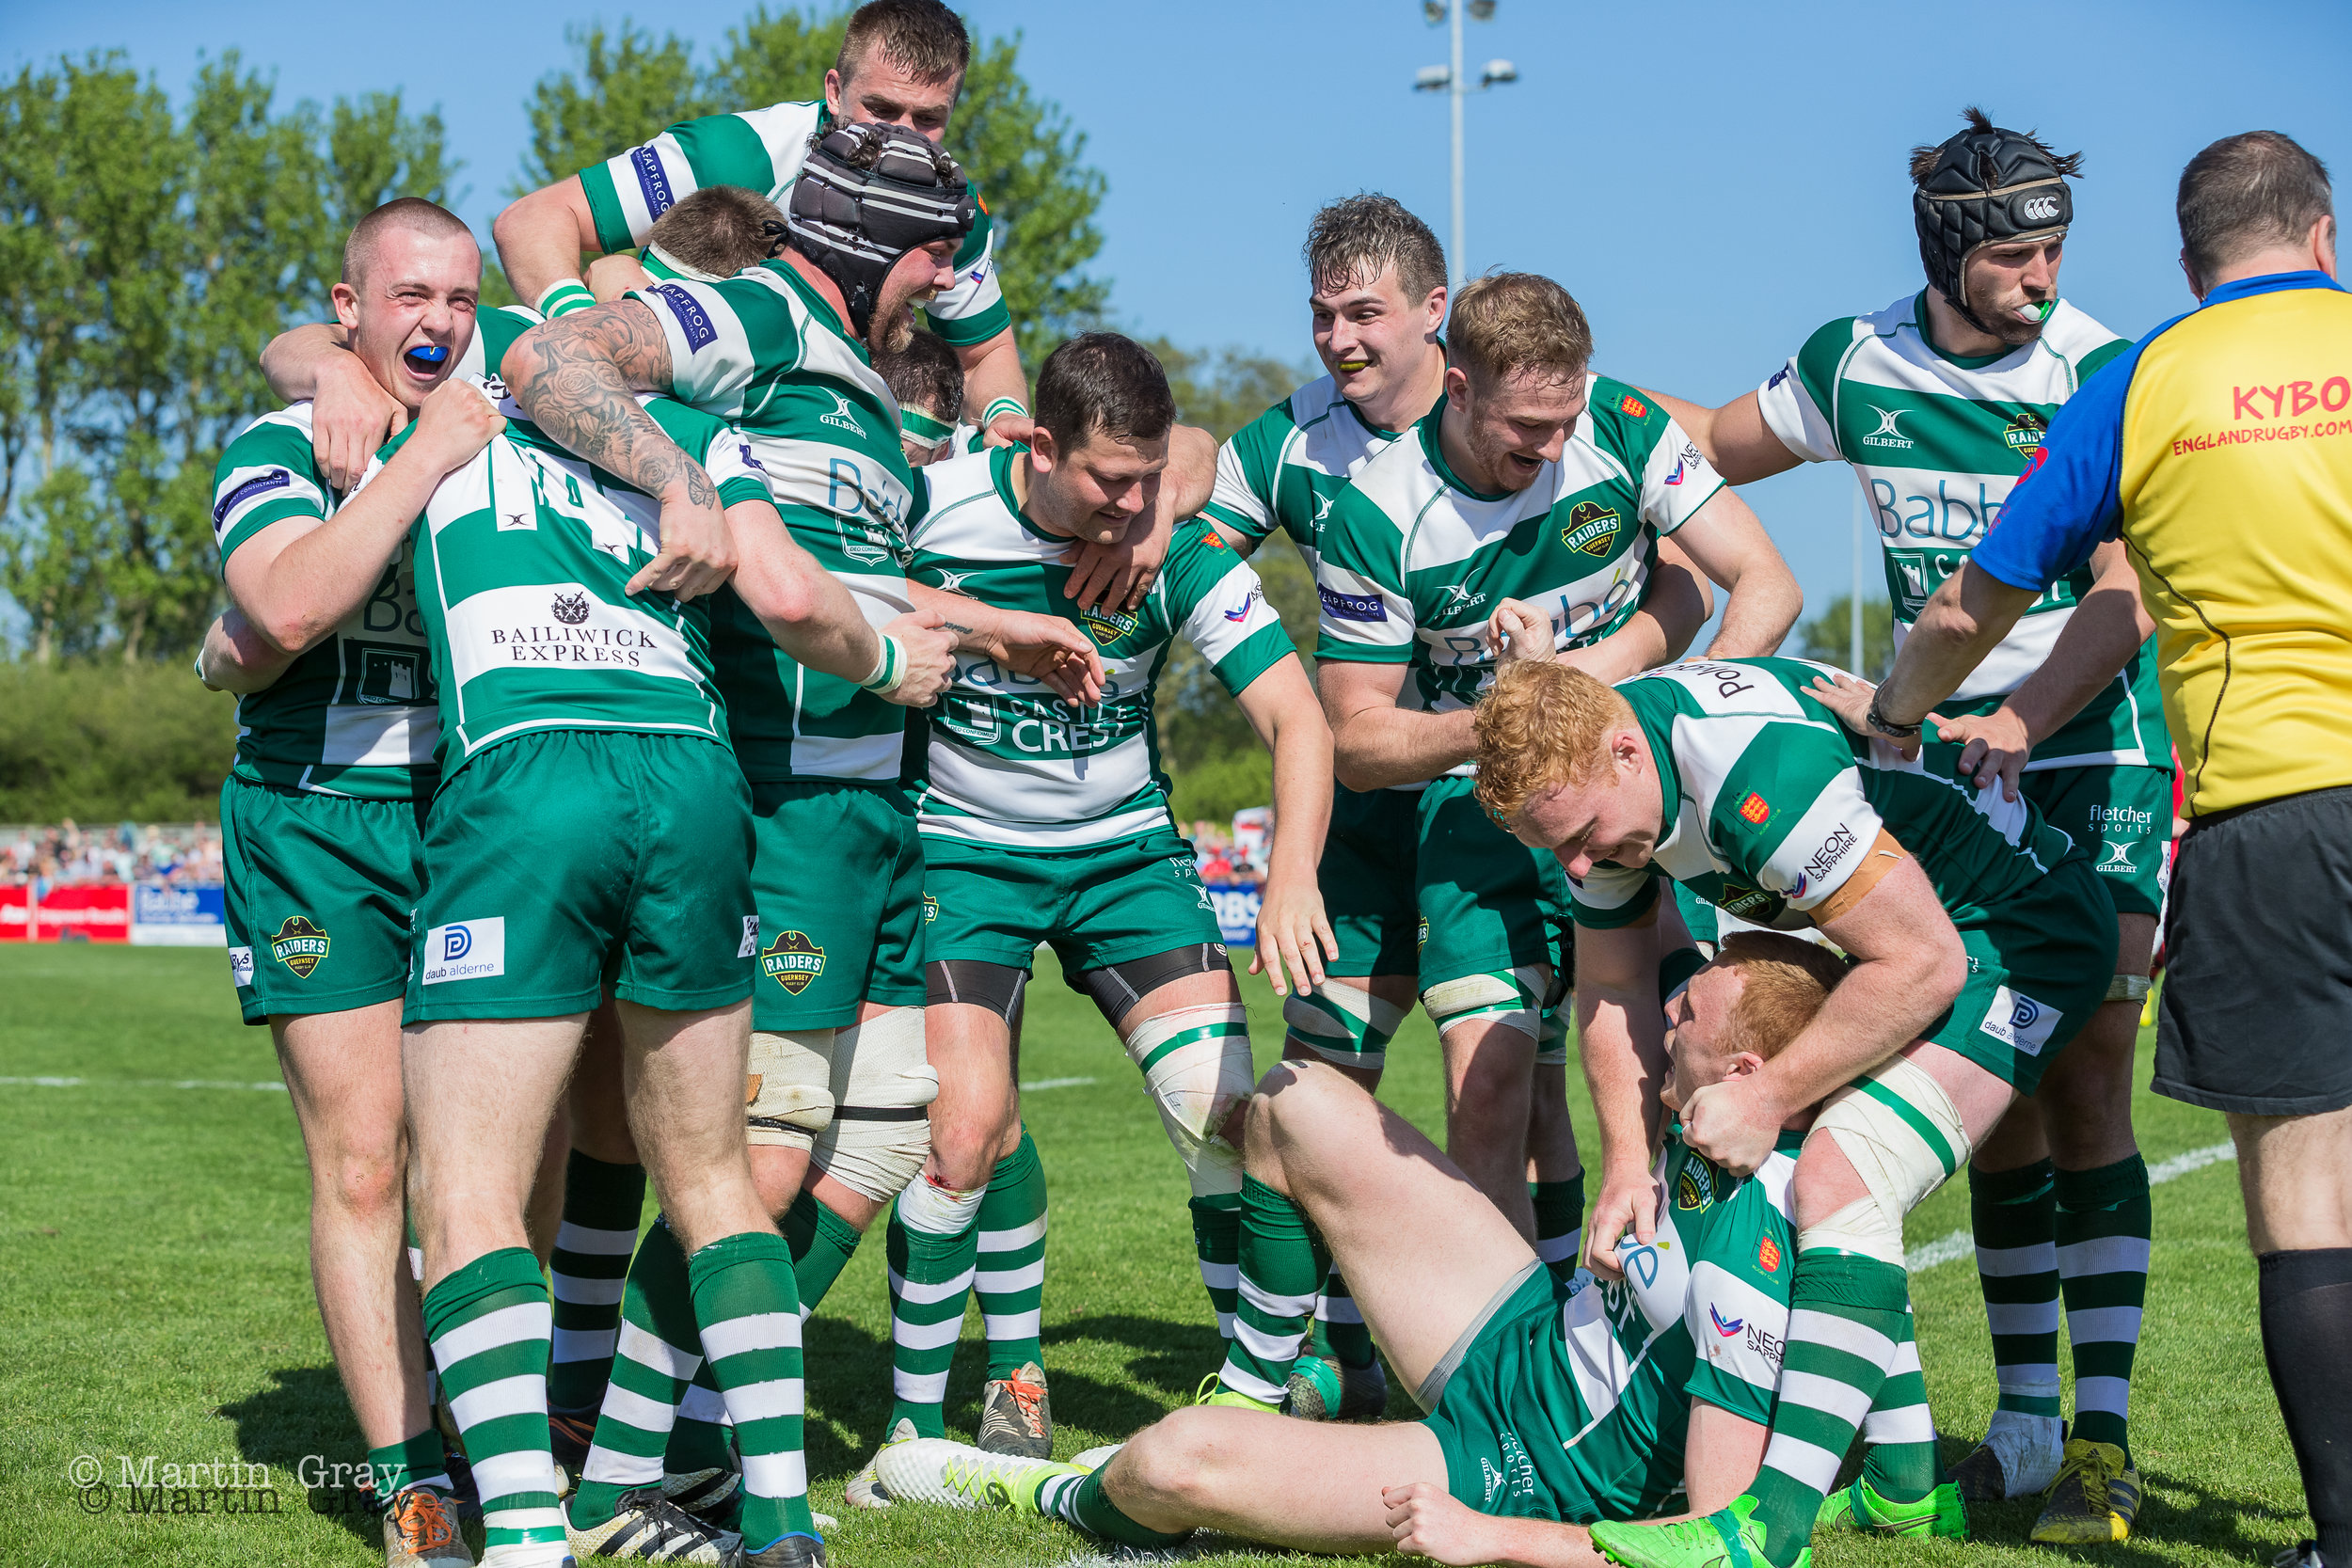 Guernsey Raiders long wait to win the Siam Cup ended at Footes lane on Saturday 5th May defeating Jersey 46-30...